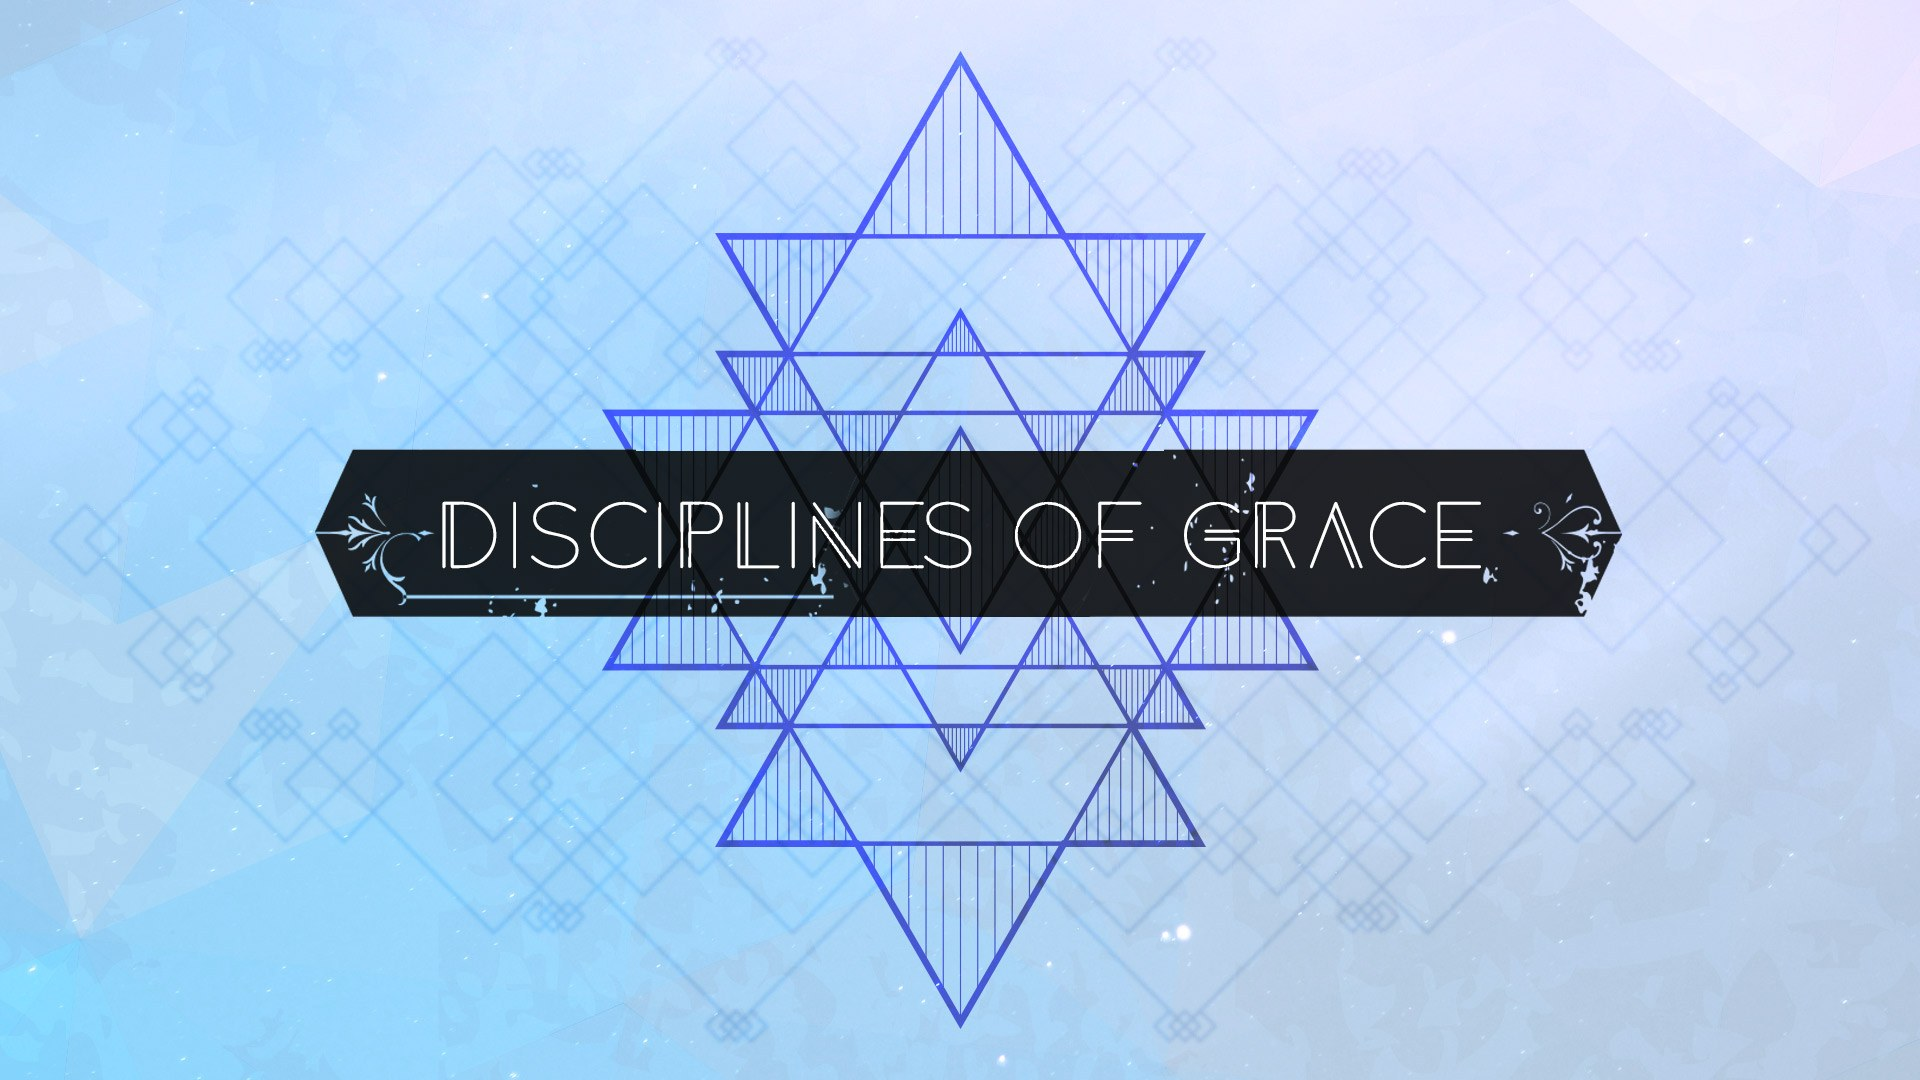 Resources for Disciplines of Grace